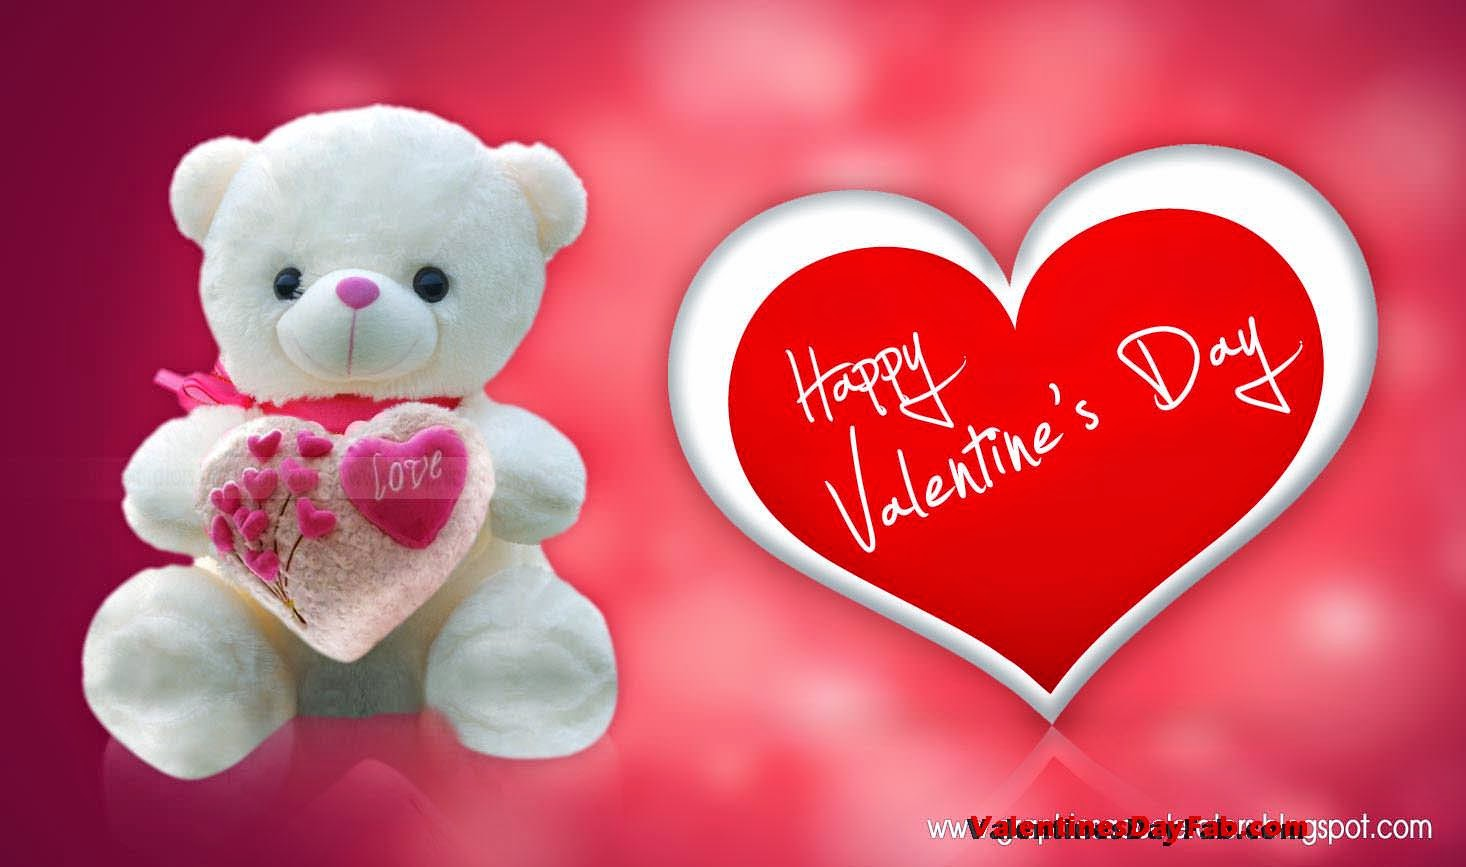 Valentines Day Poems For Him, Valentines Day 2015 Poems For Him, Valentines  Day Poems